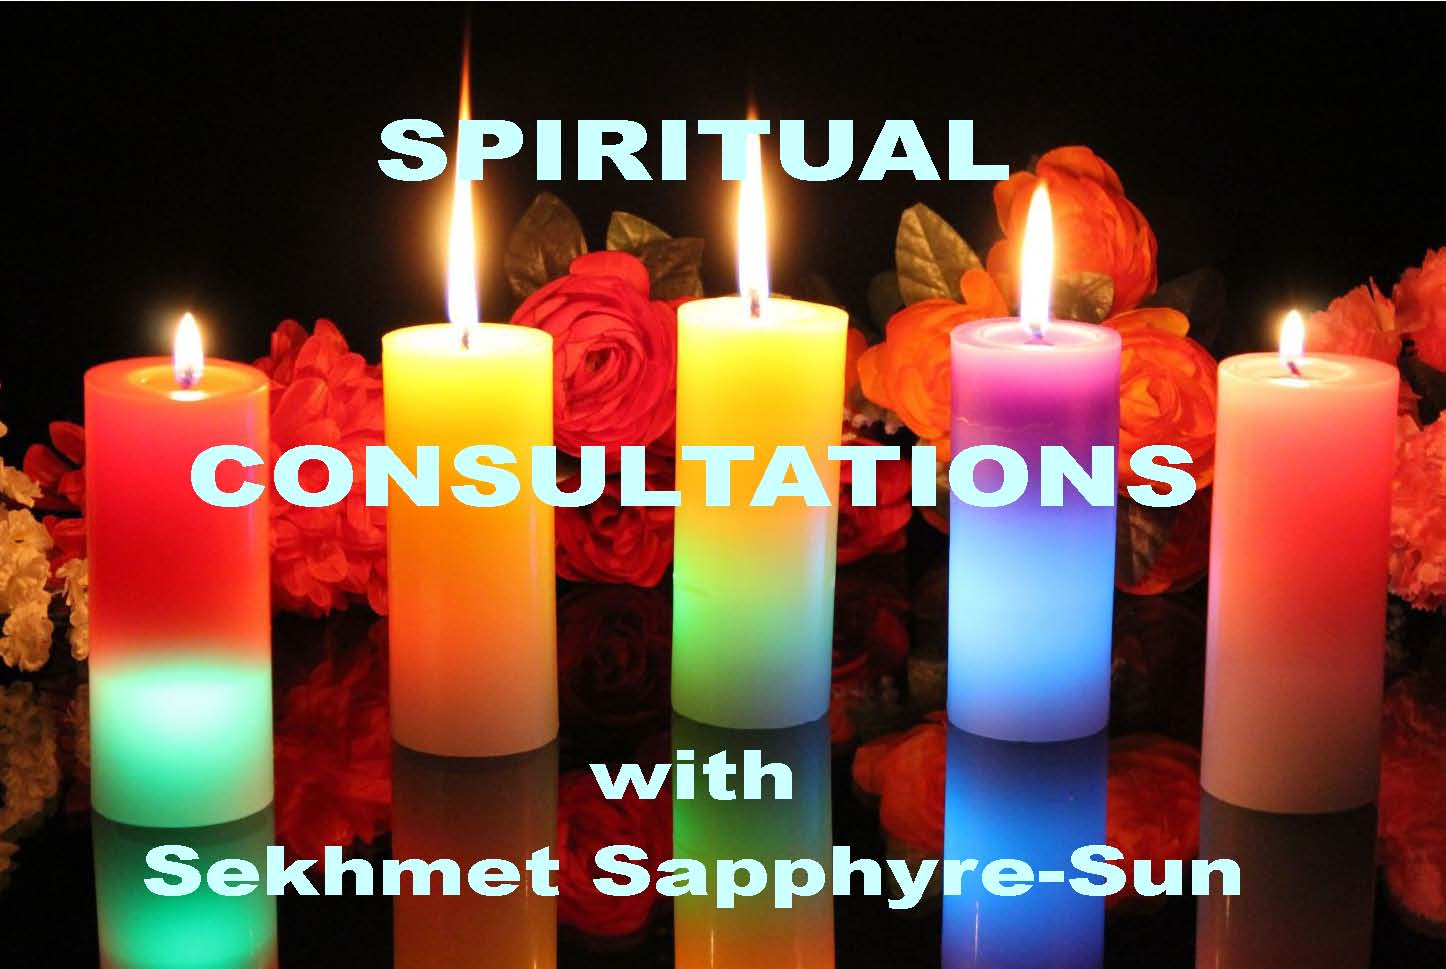 Spiritual Counseling with Sekhmet Sapphyre-Sun